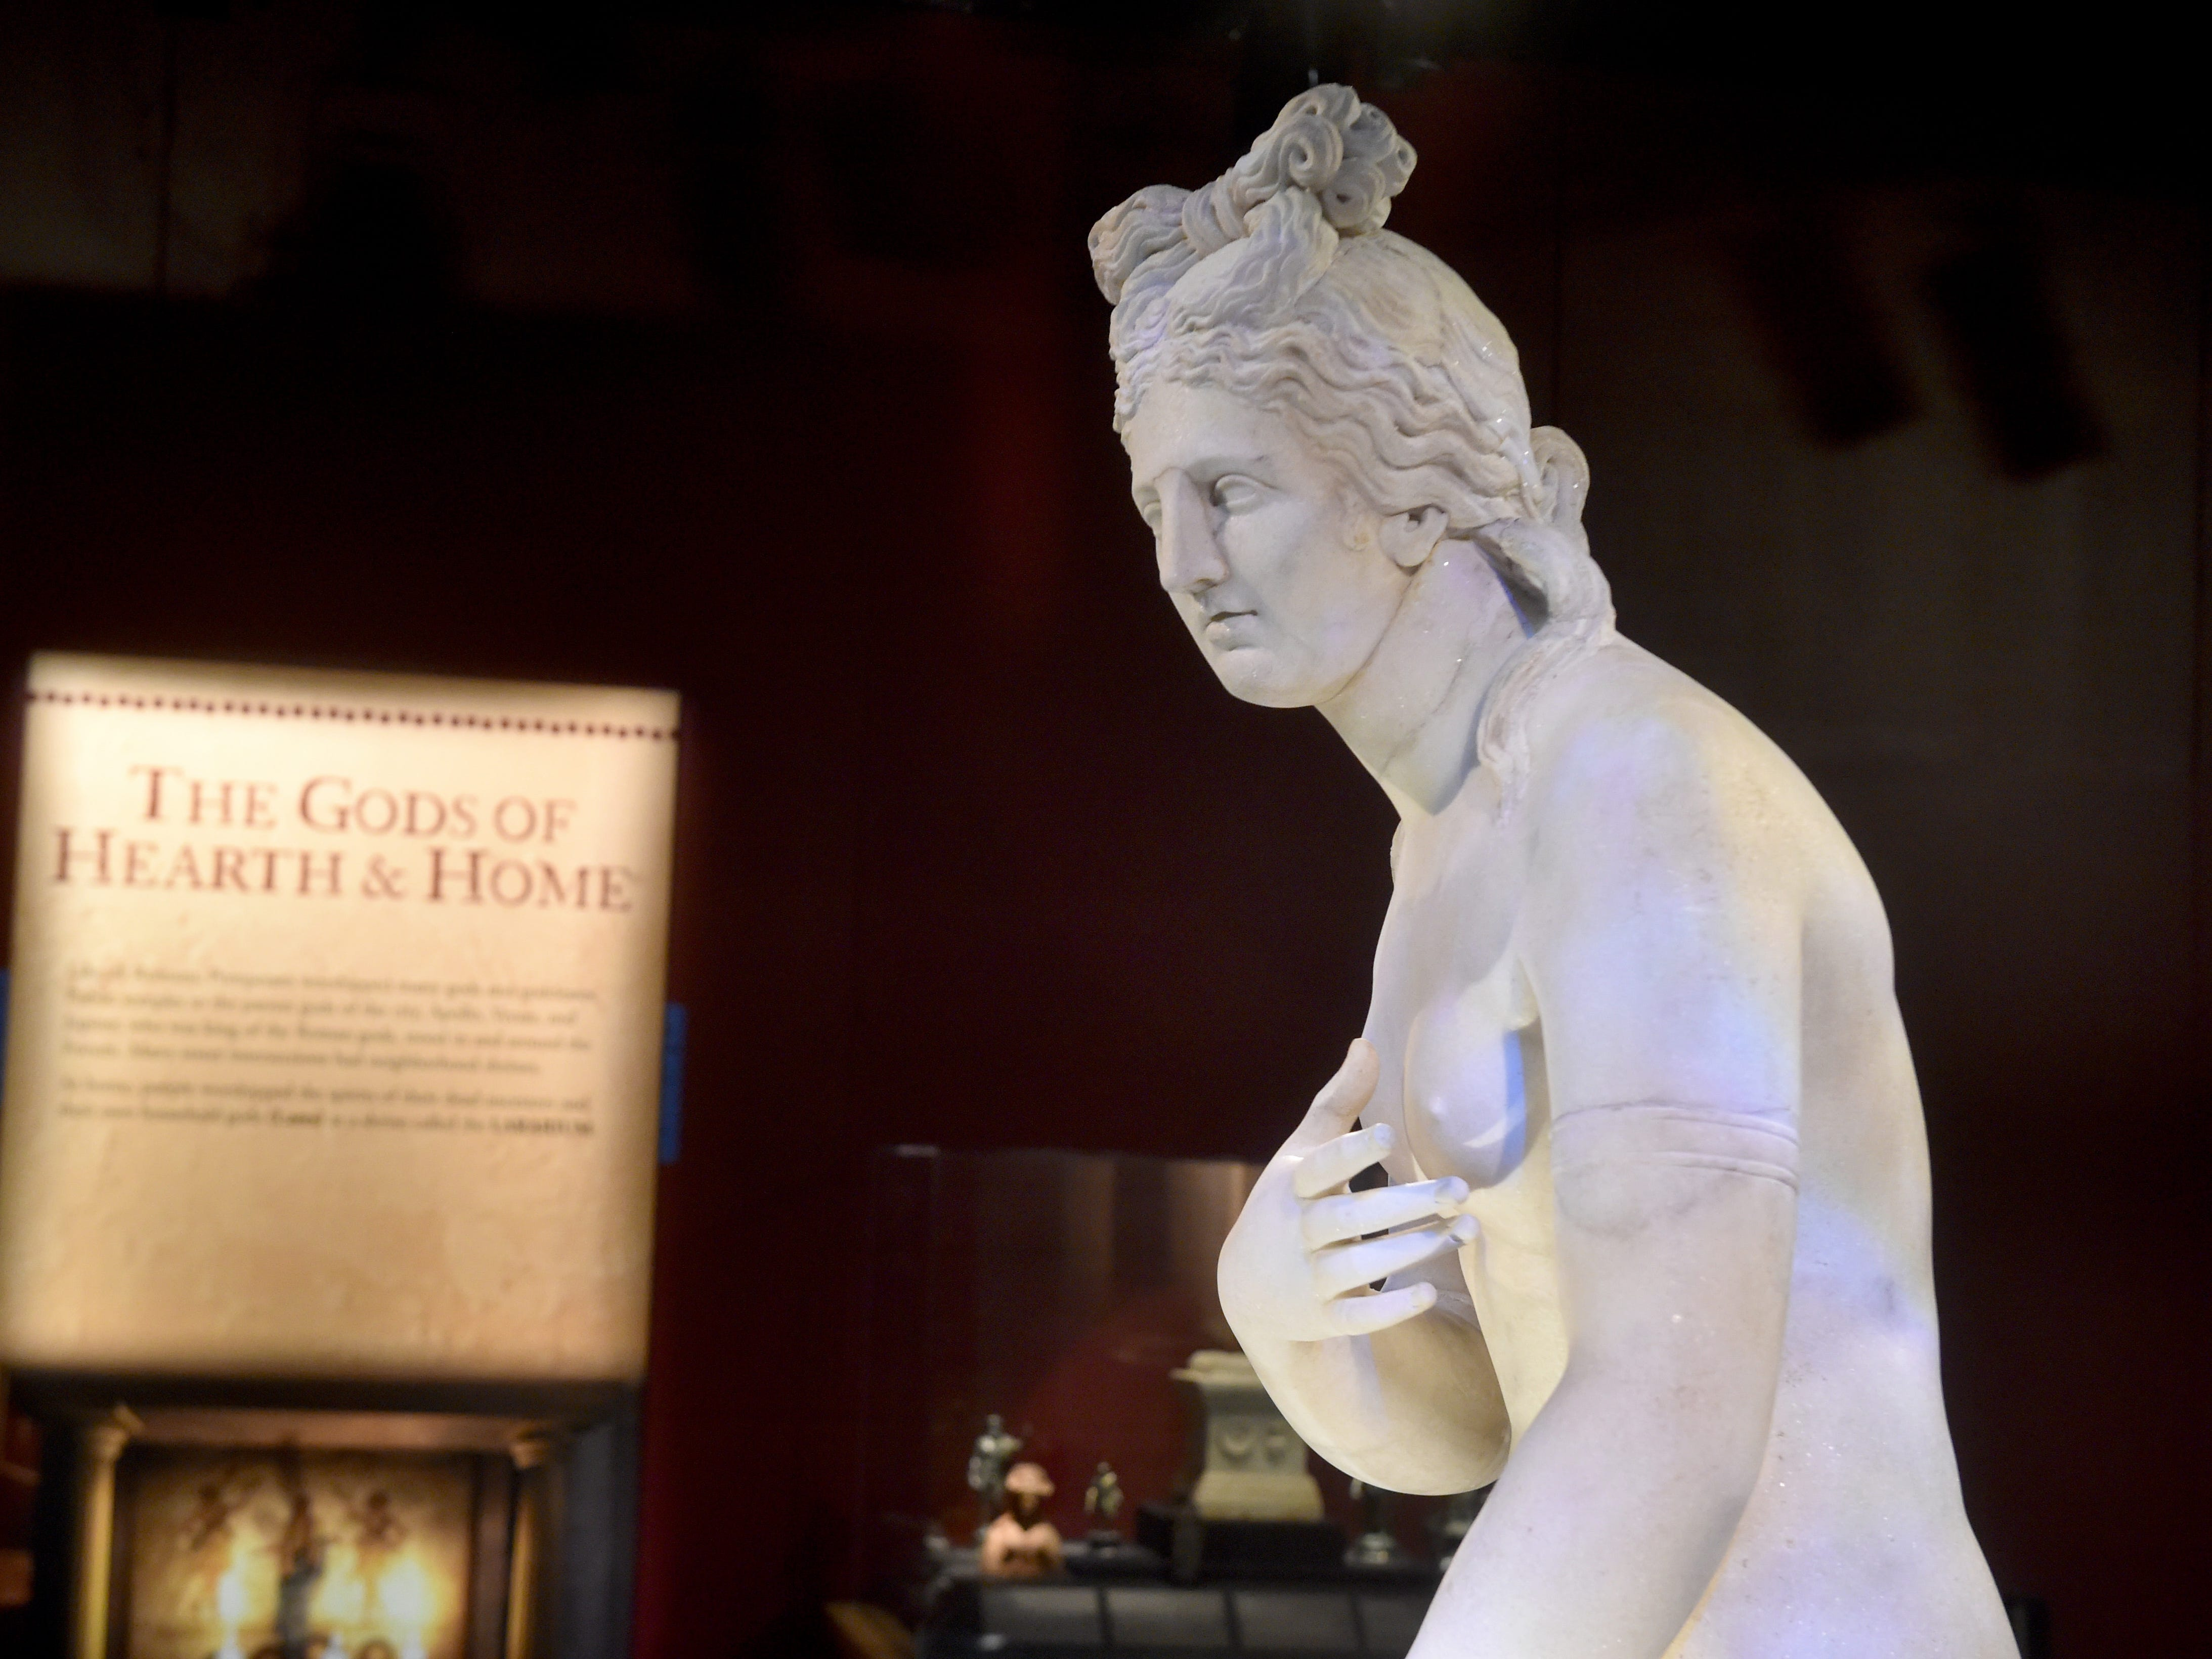 A statue of Aphrodite serves as the centerpiece in one room of Pompeii exhibit at the Ronald Reagan Presidential Library & Museum in Simi Valley. This is the first time this statue has ever been exhibited in the United States.